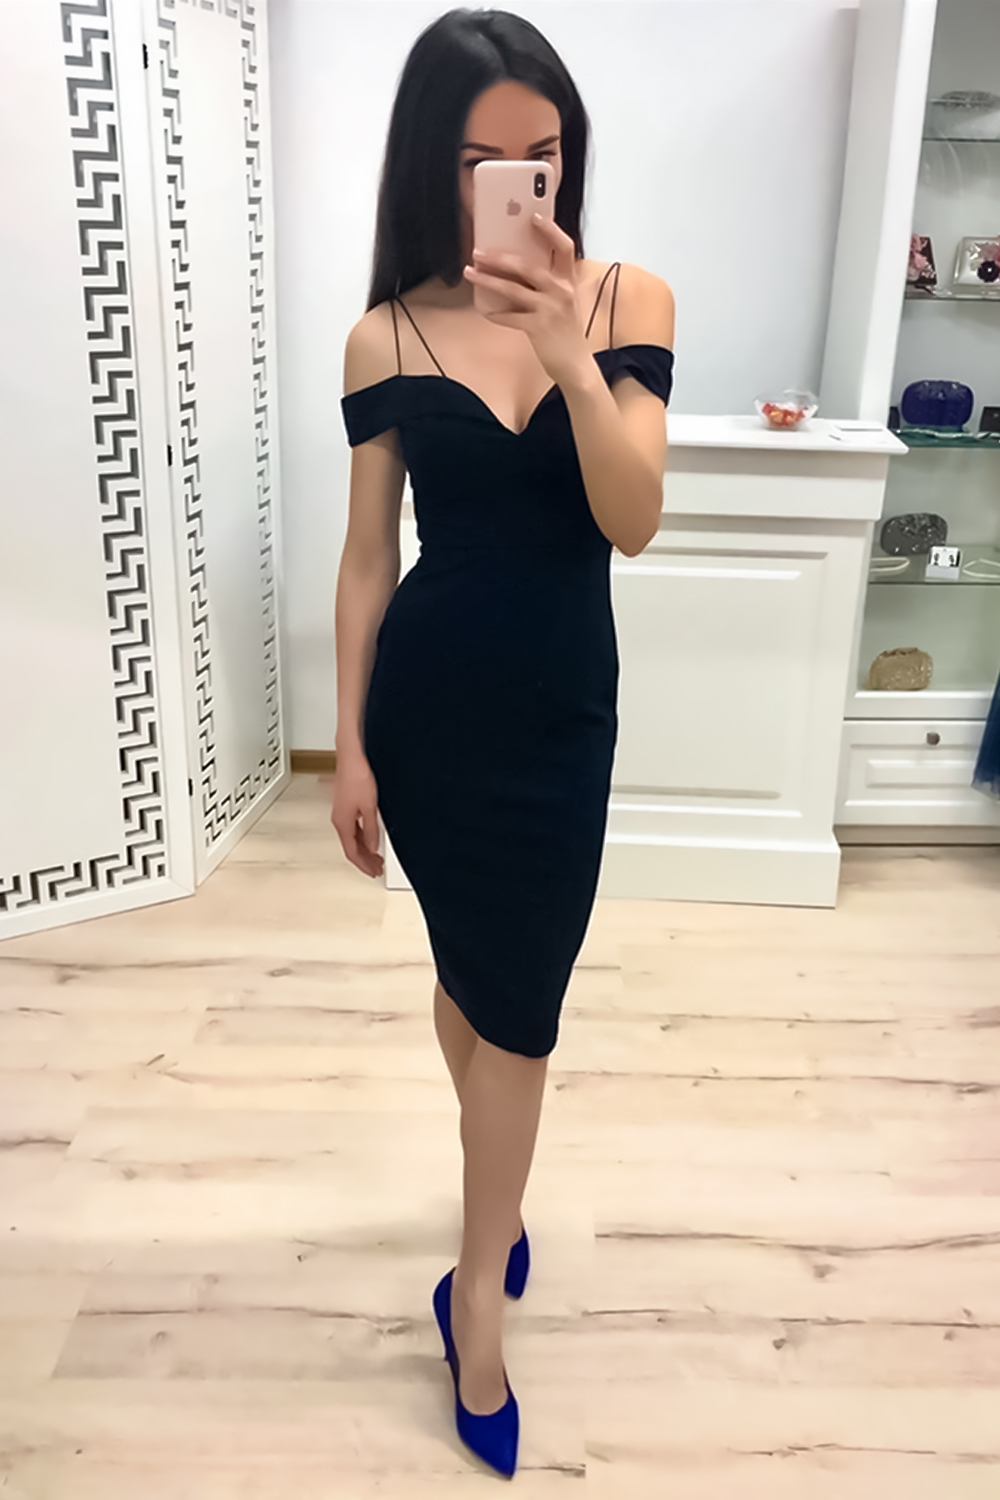 woman in a tight evening dress is posing in the room and taking a selfie